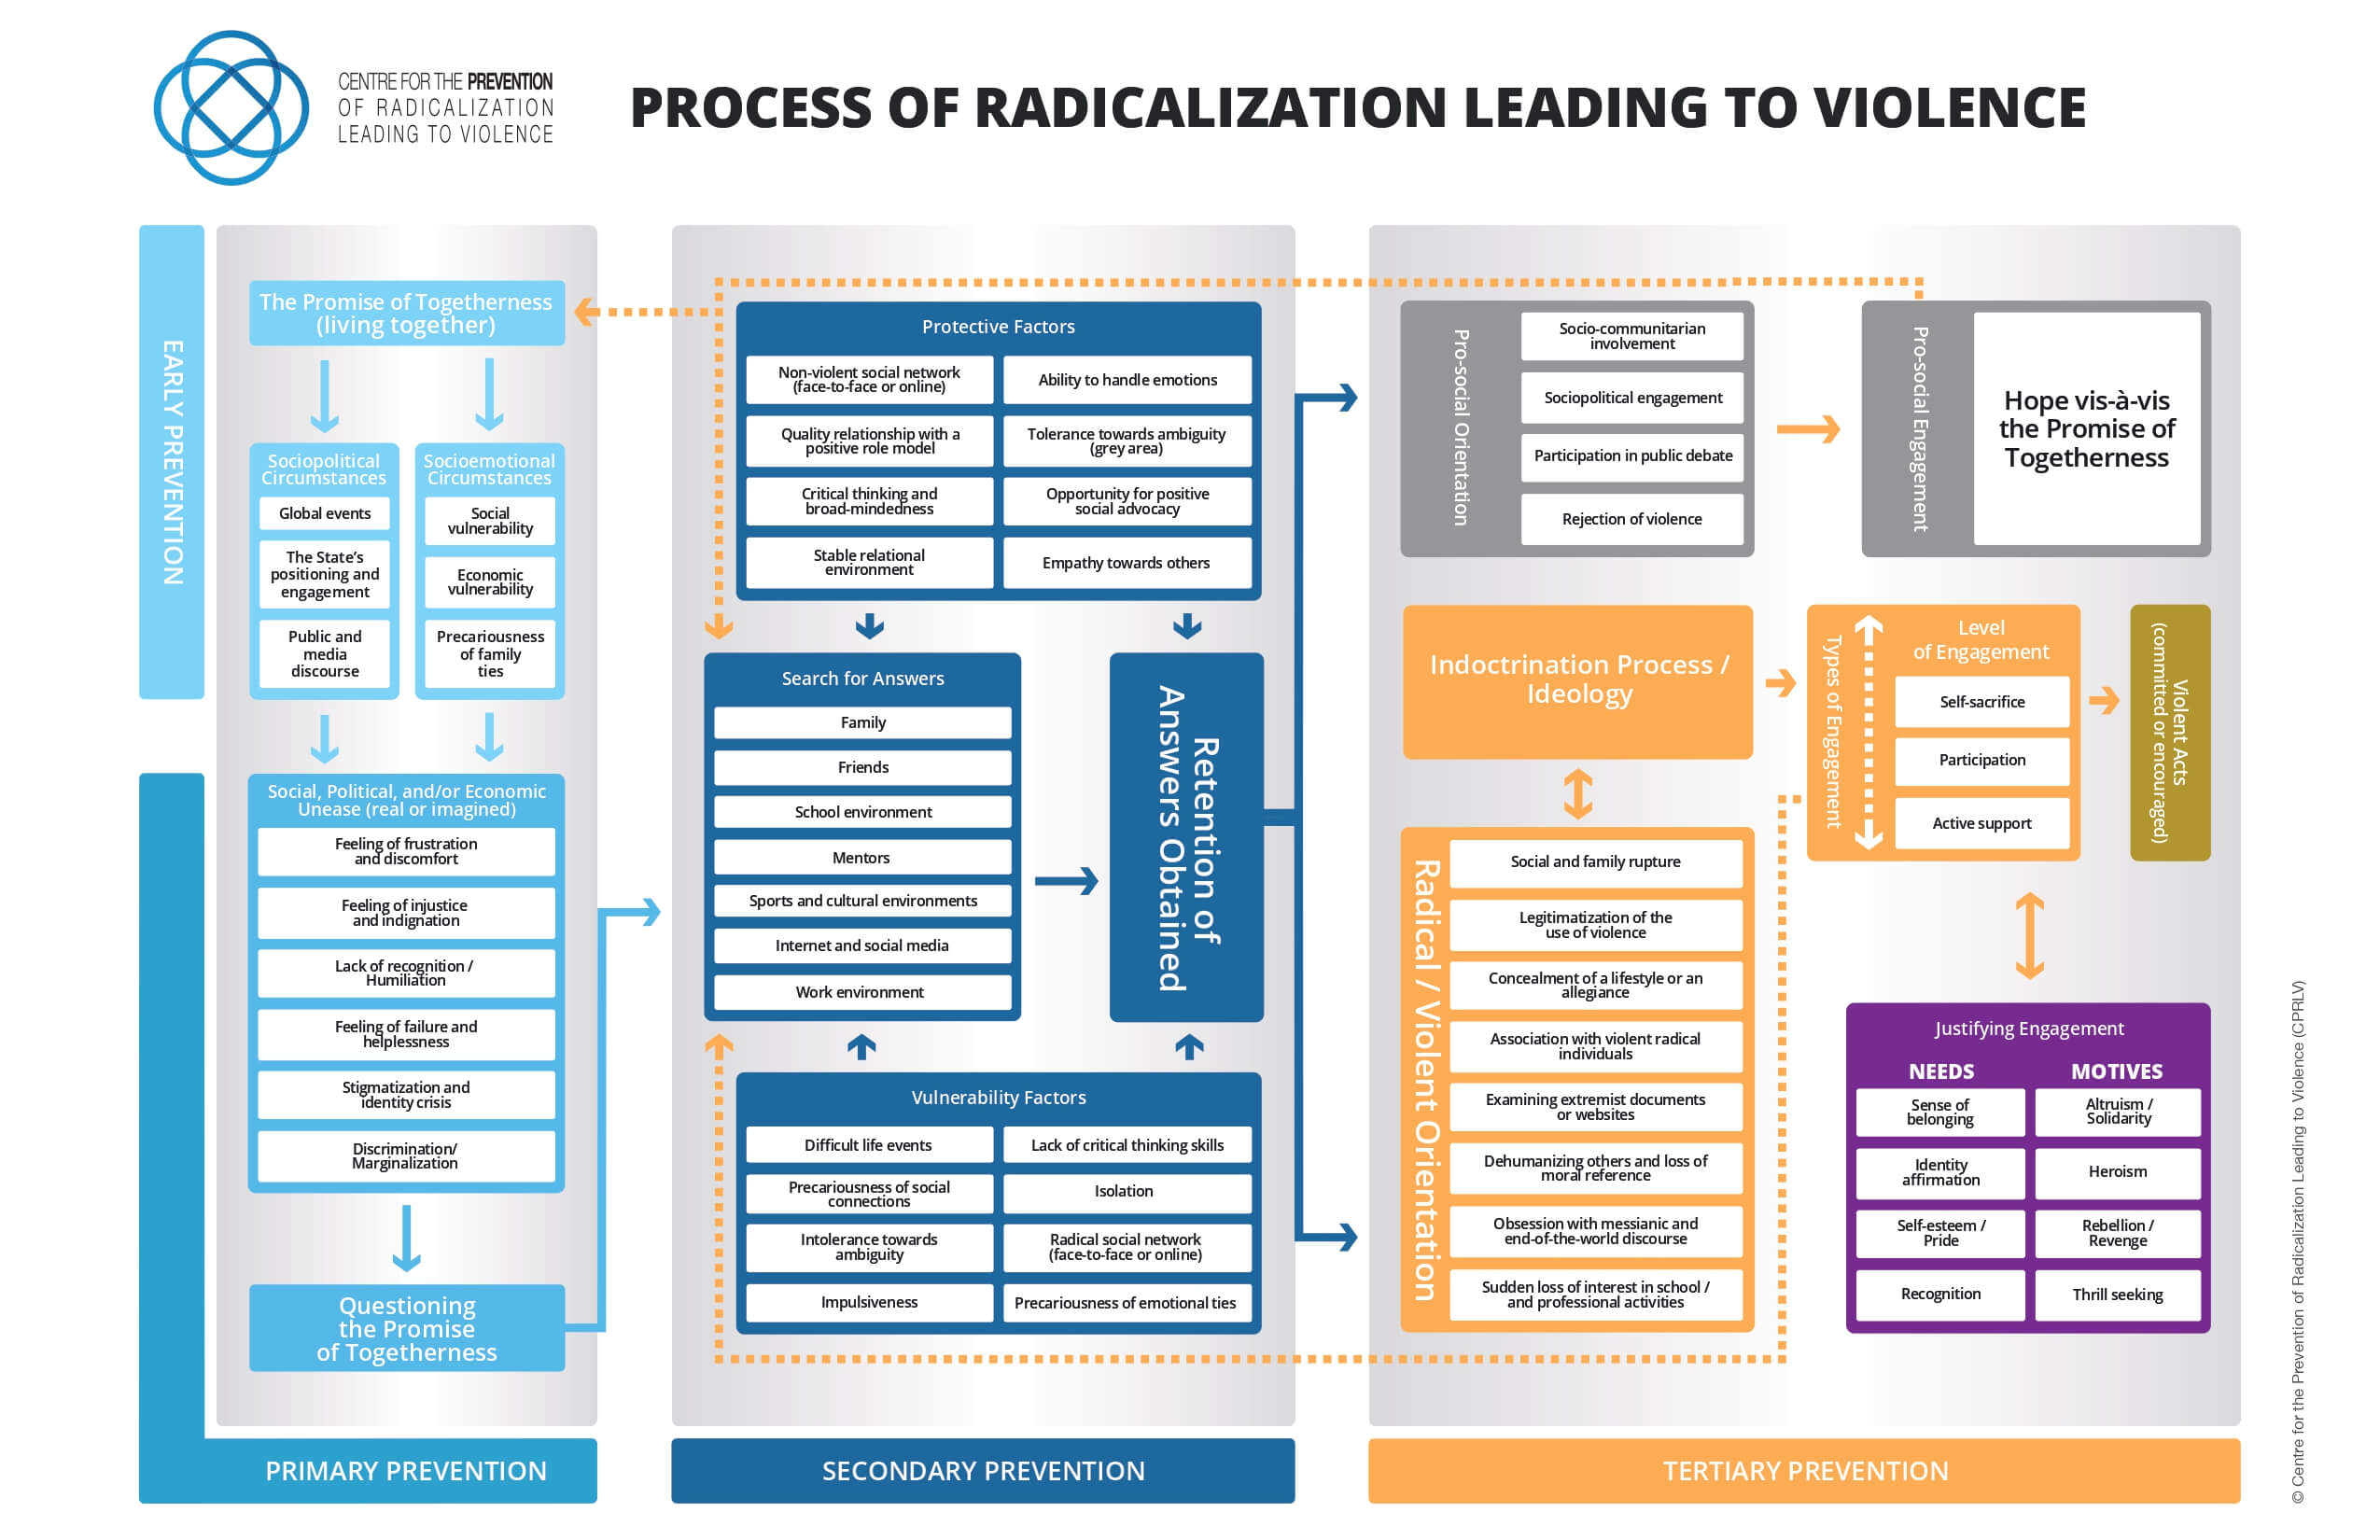 Process of radicalization leading to violence diagram